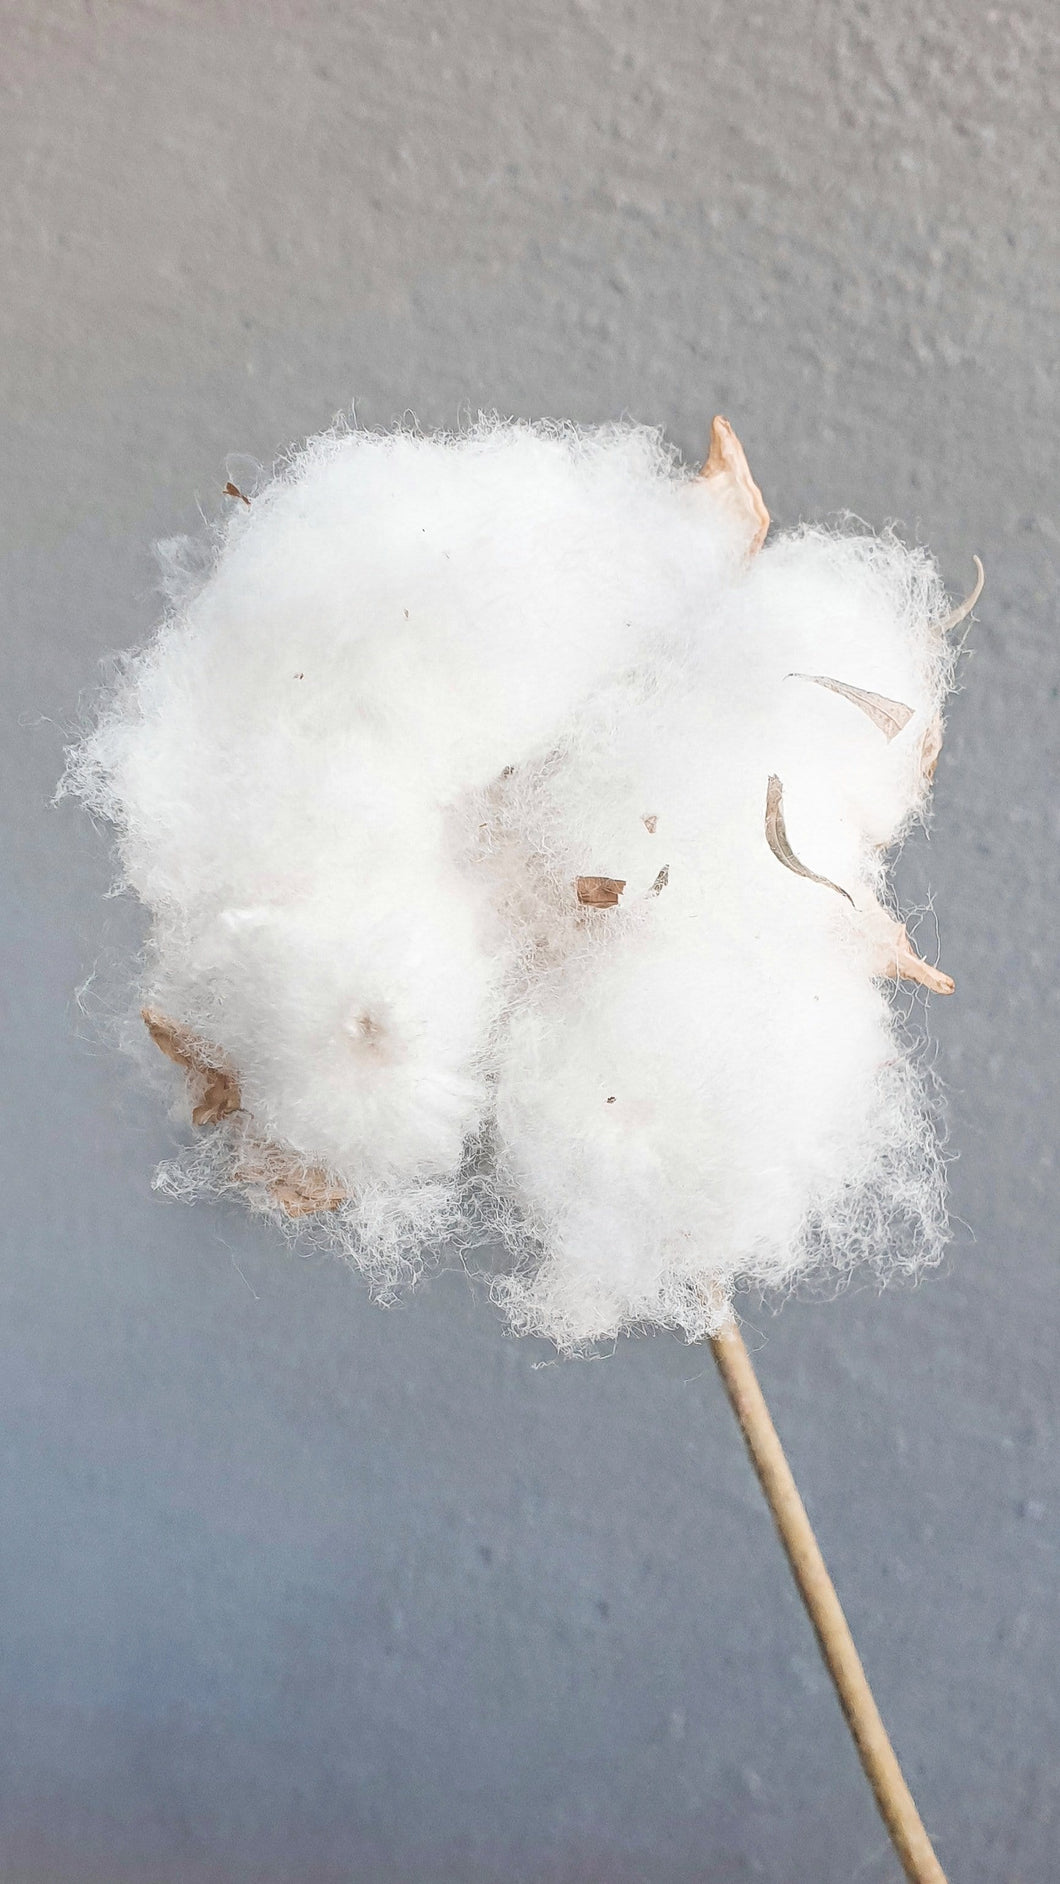 LITTLE COTTON STEM